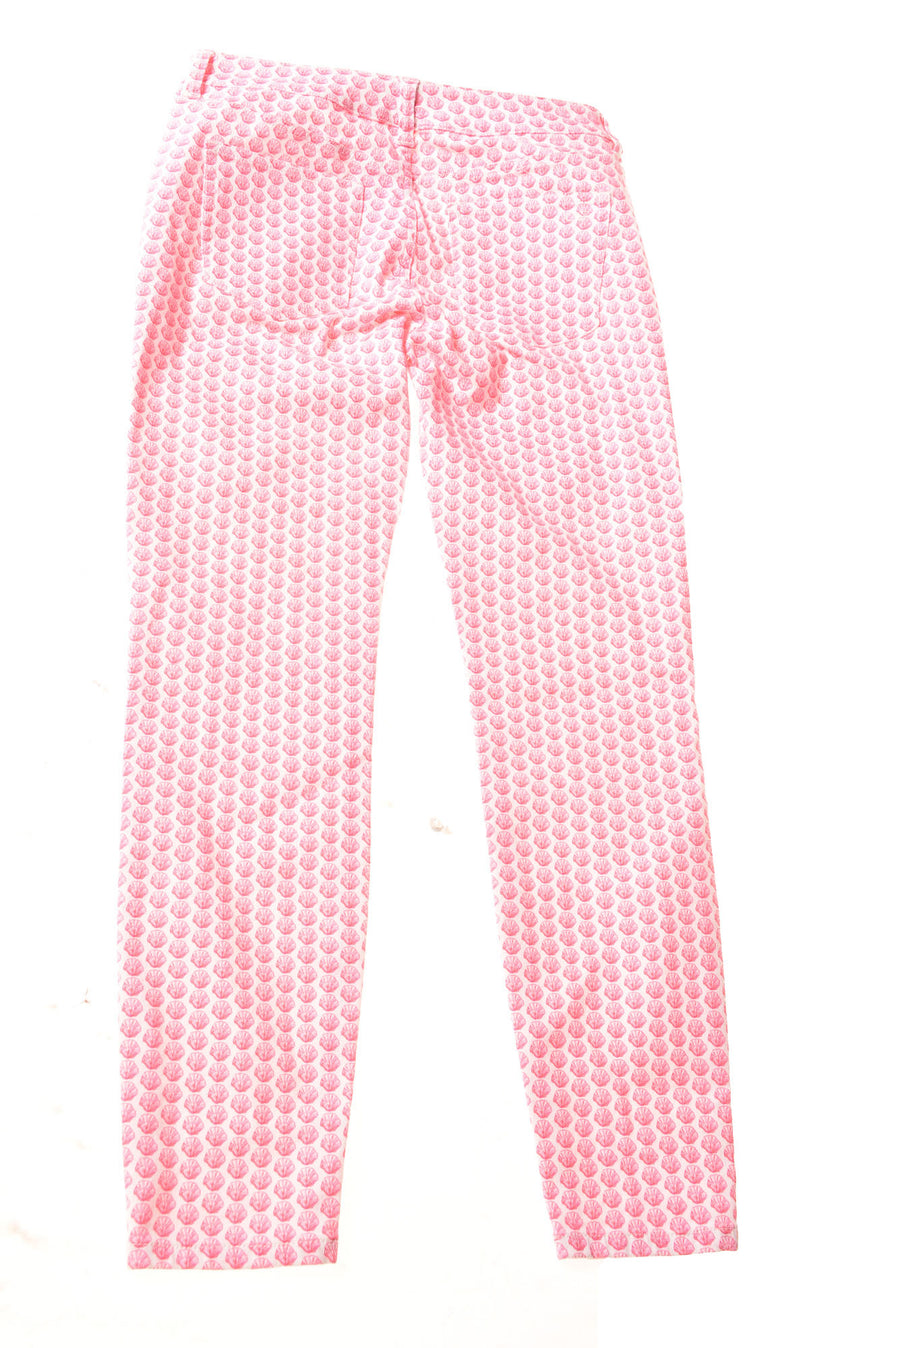 USED Vineyard Vines Women's Jeans 4 Pink / Print